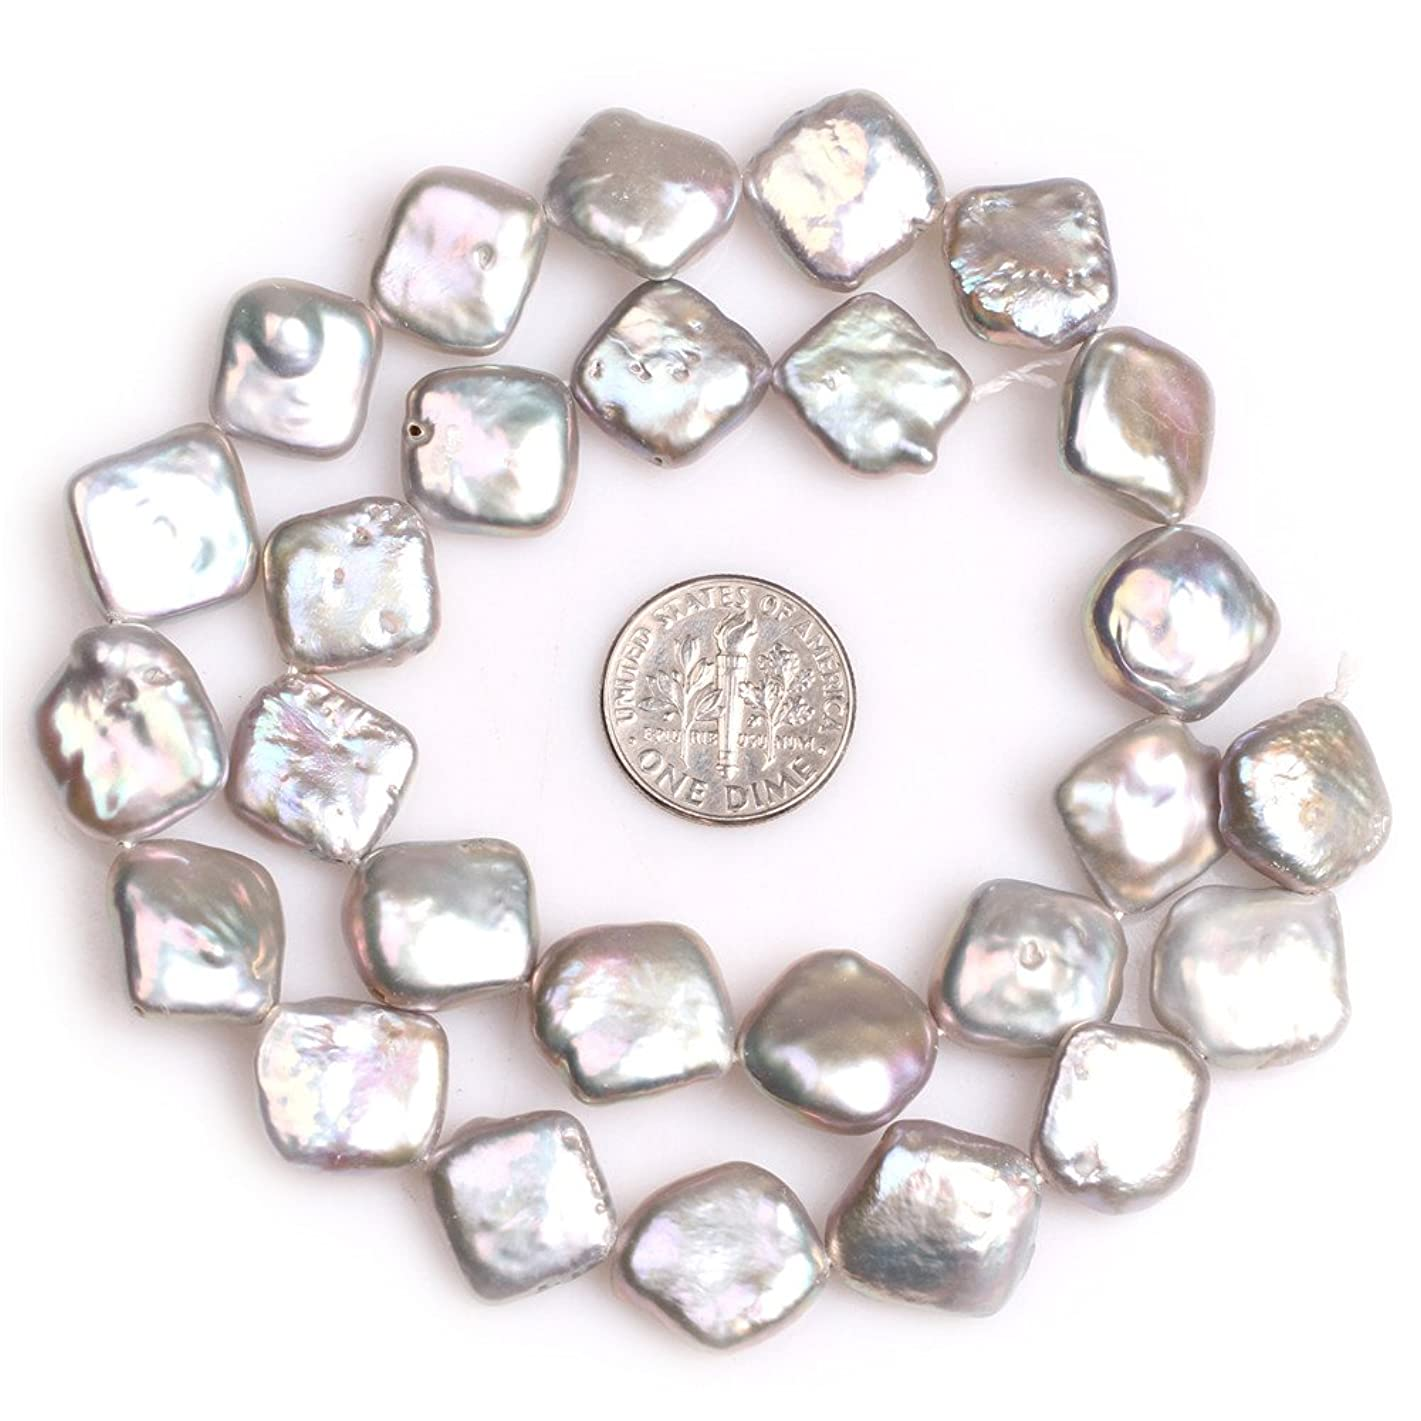 Nuclear Edison Pearl Beads for Jewelry Making Natural Gemstone 14mm Grey Square Rhombus Shape 15